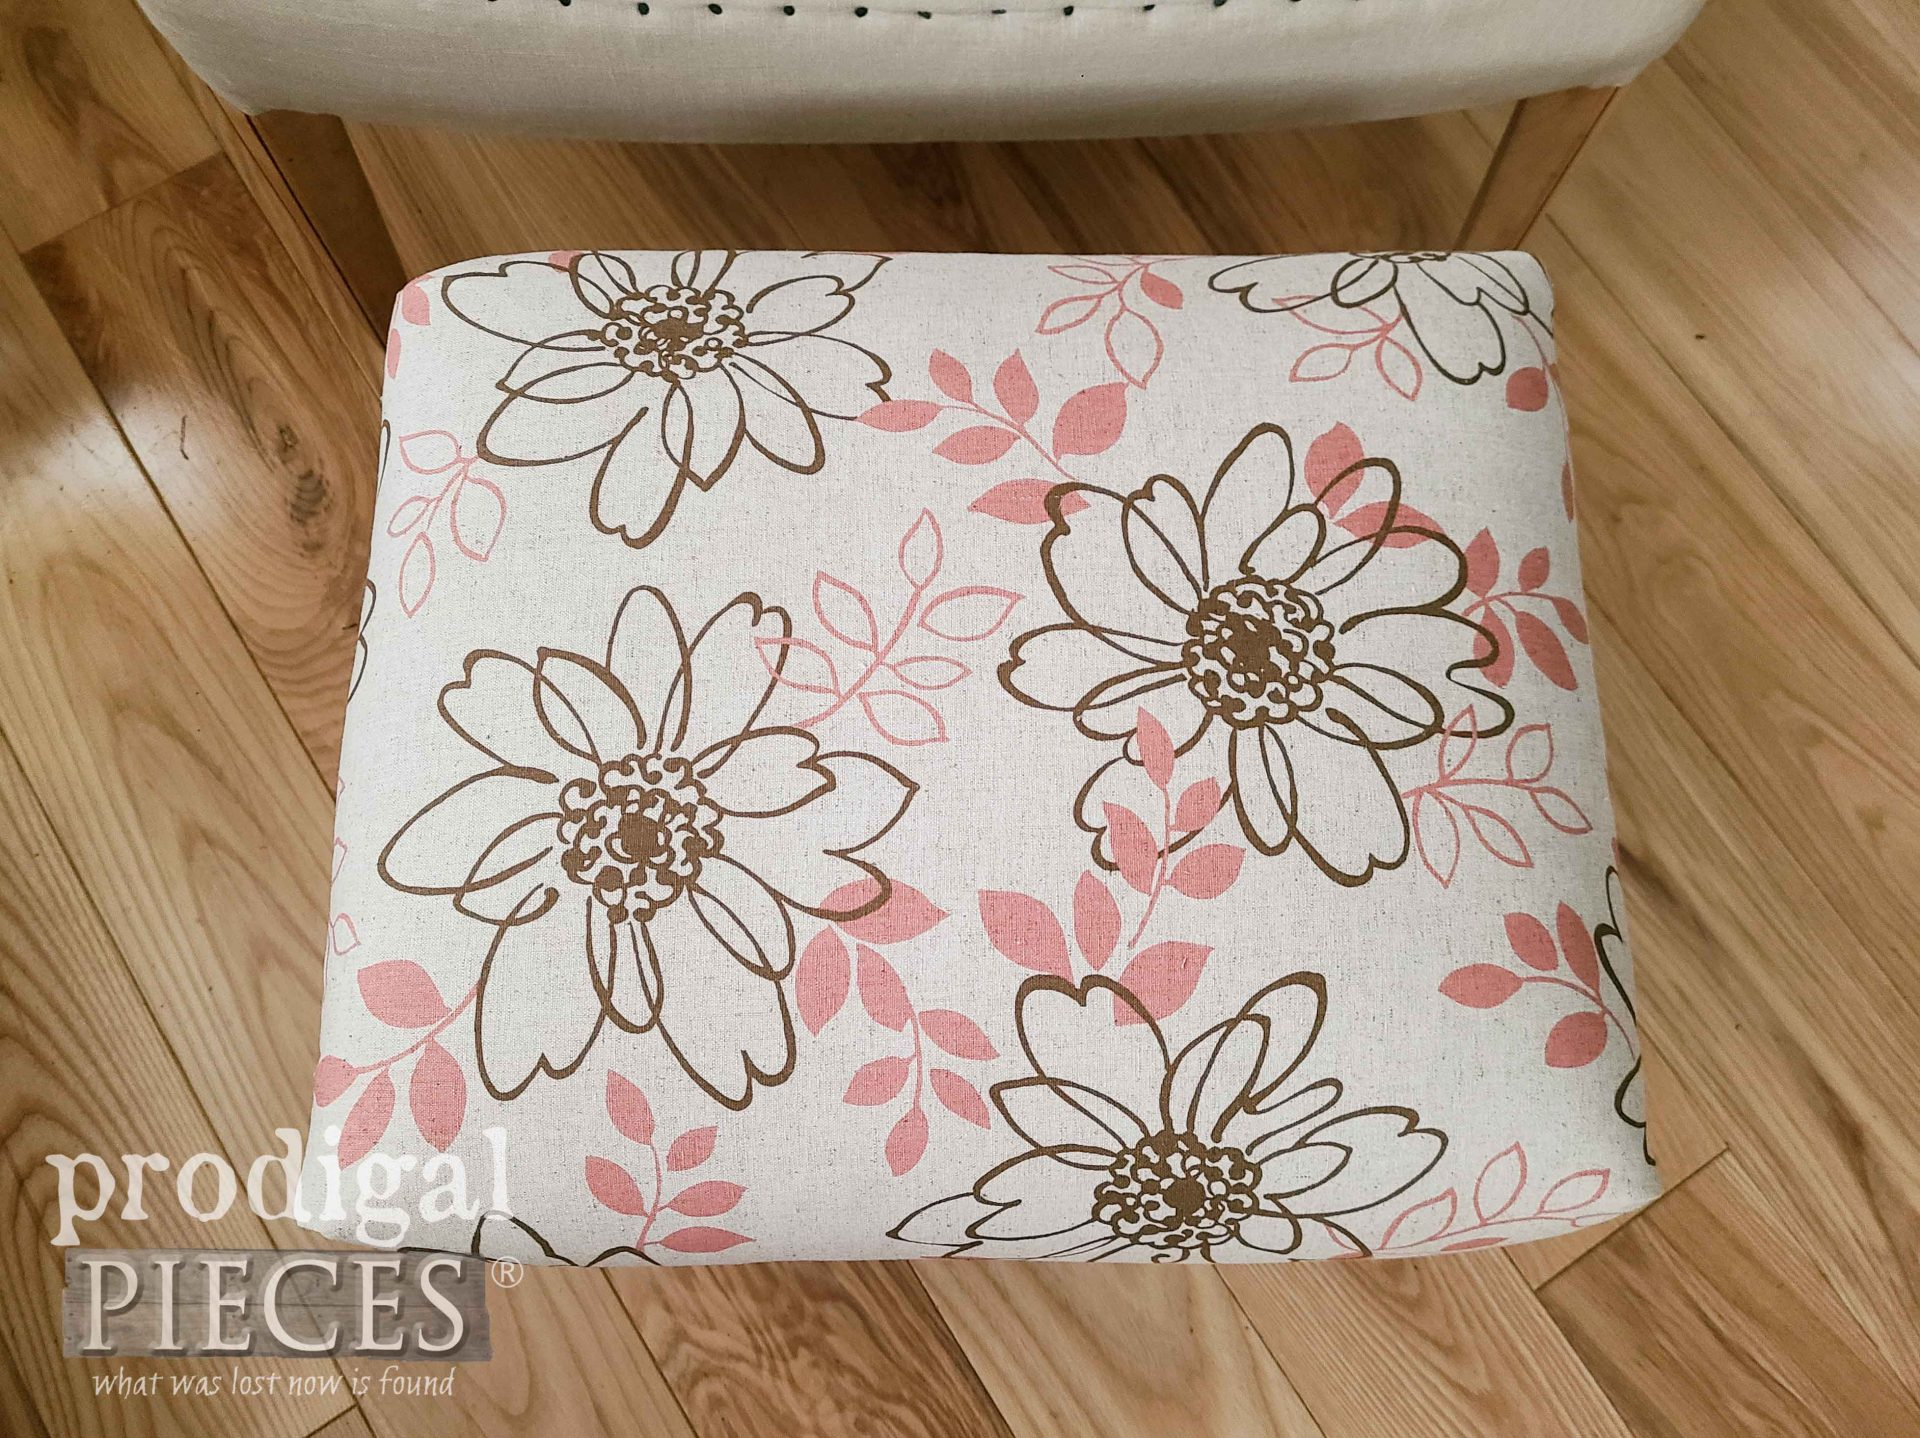 Floral Linen Upholstery on Vintage Footstool by Larissa of Prodigal Pieces | prodigalpieces.com #prodigalpieces